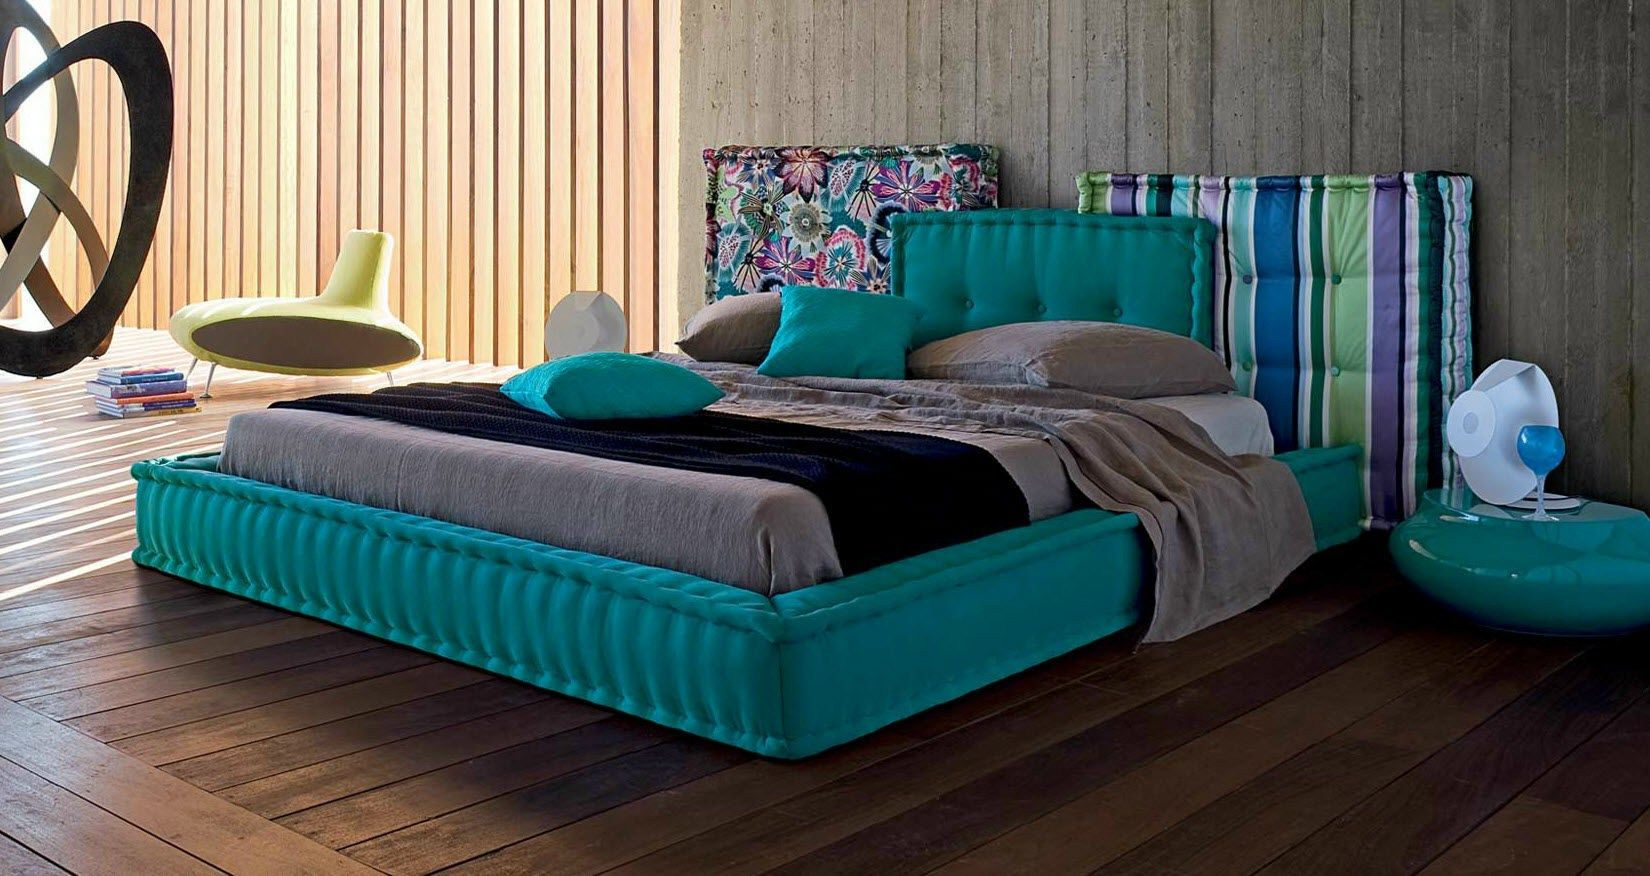 double bed with upholstered headboard mah jong les. Black Bedroom Furniture Sets. Home Design Ideas